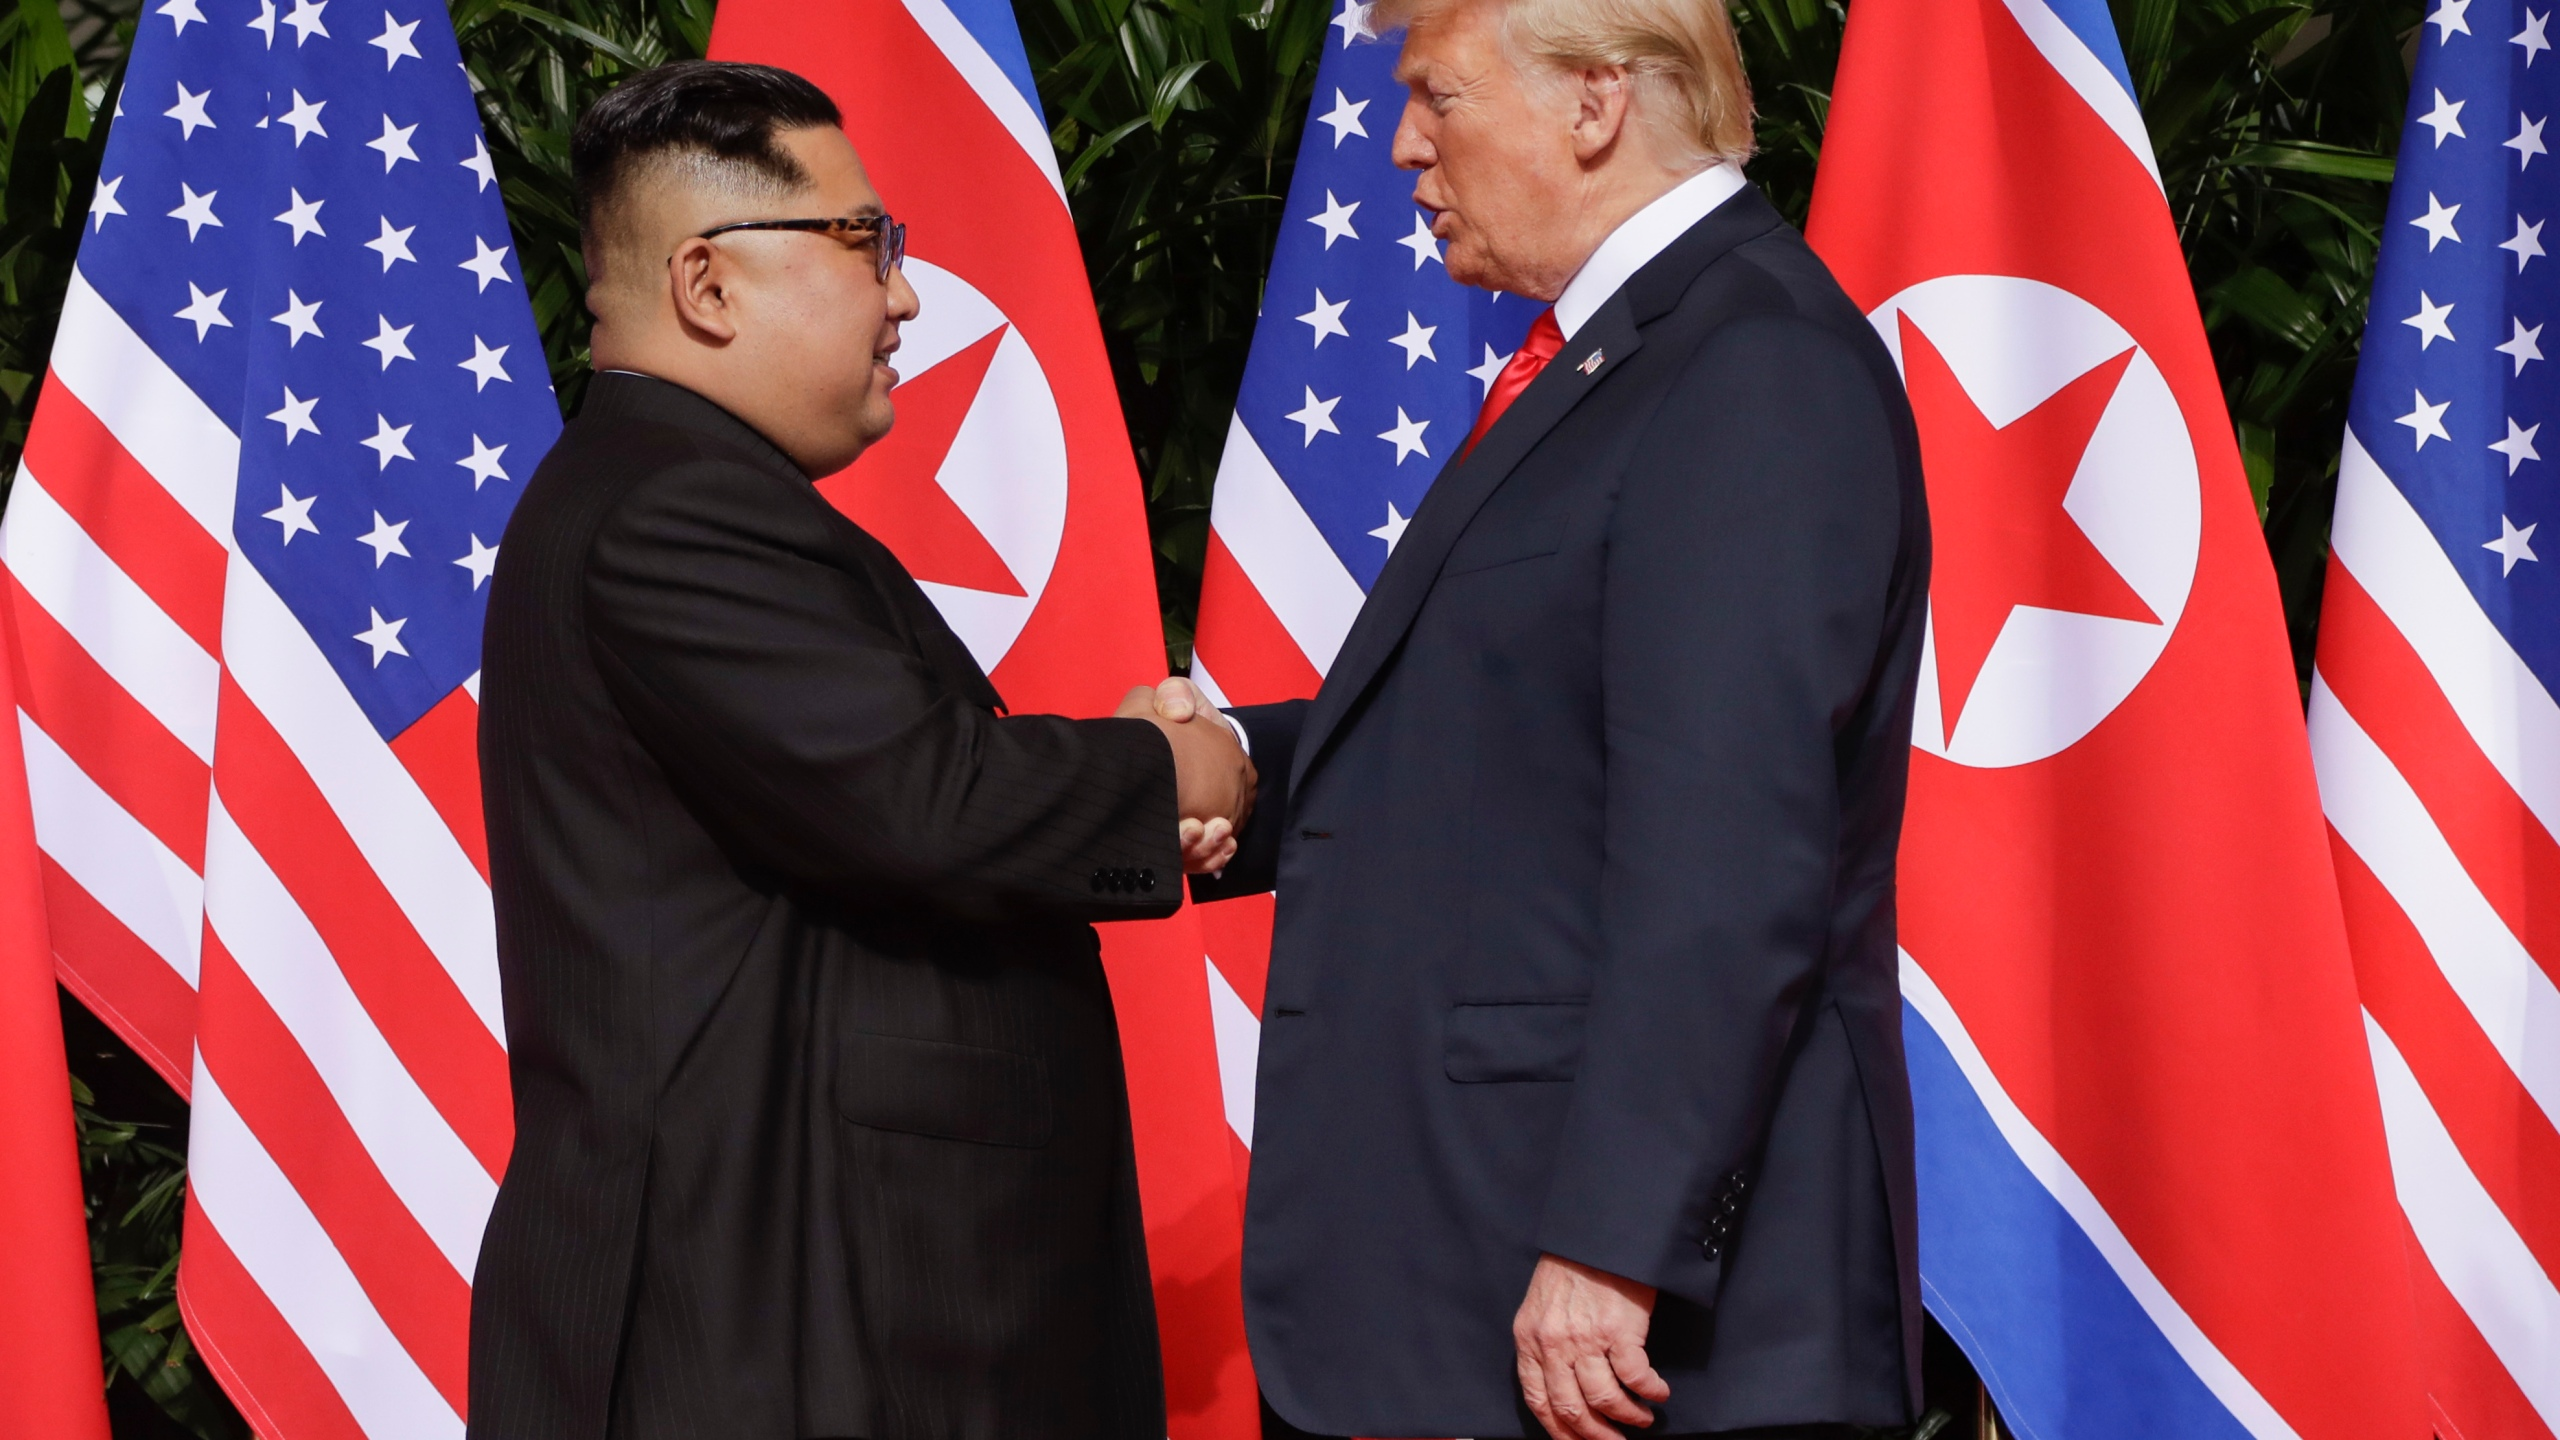 APTOPIX_Trump_Kim_Summit_96337-159532.jpg88159248